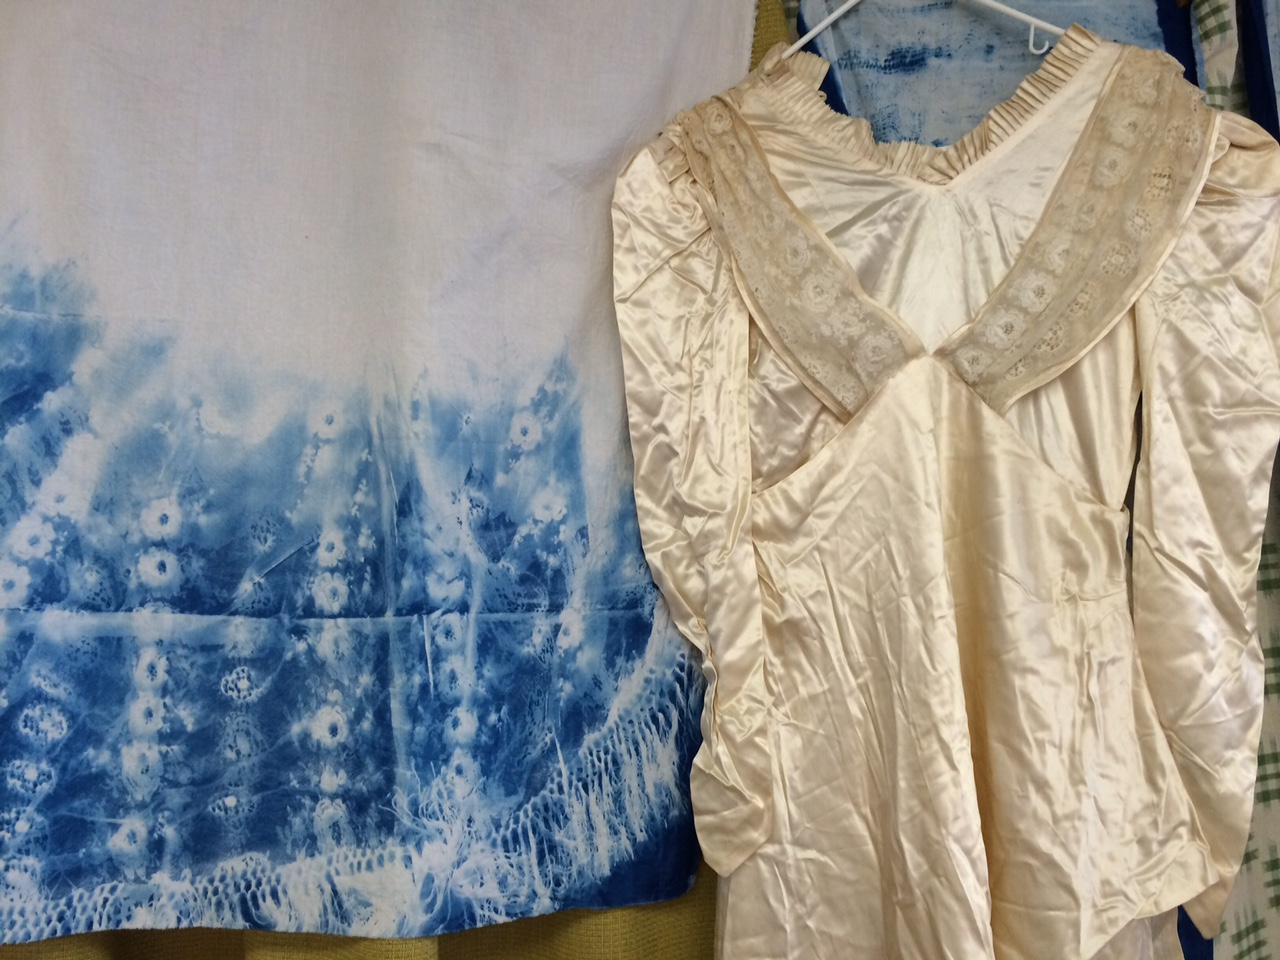 Nana's wedding dress and a cyanotype from the lacy fabric